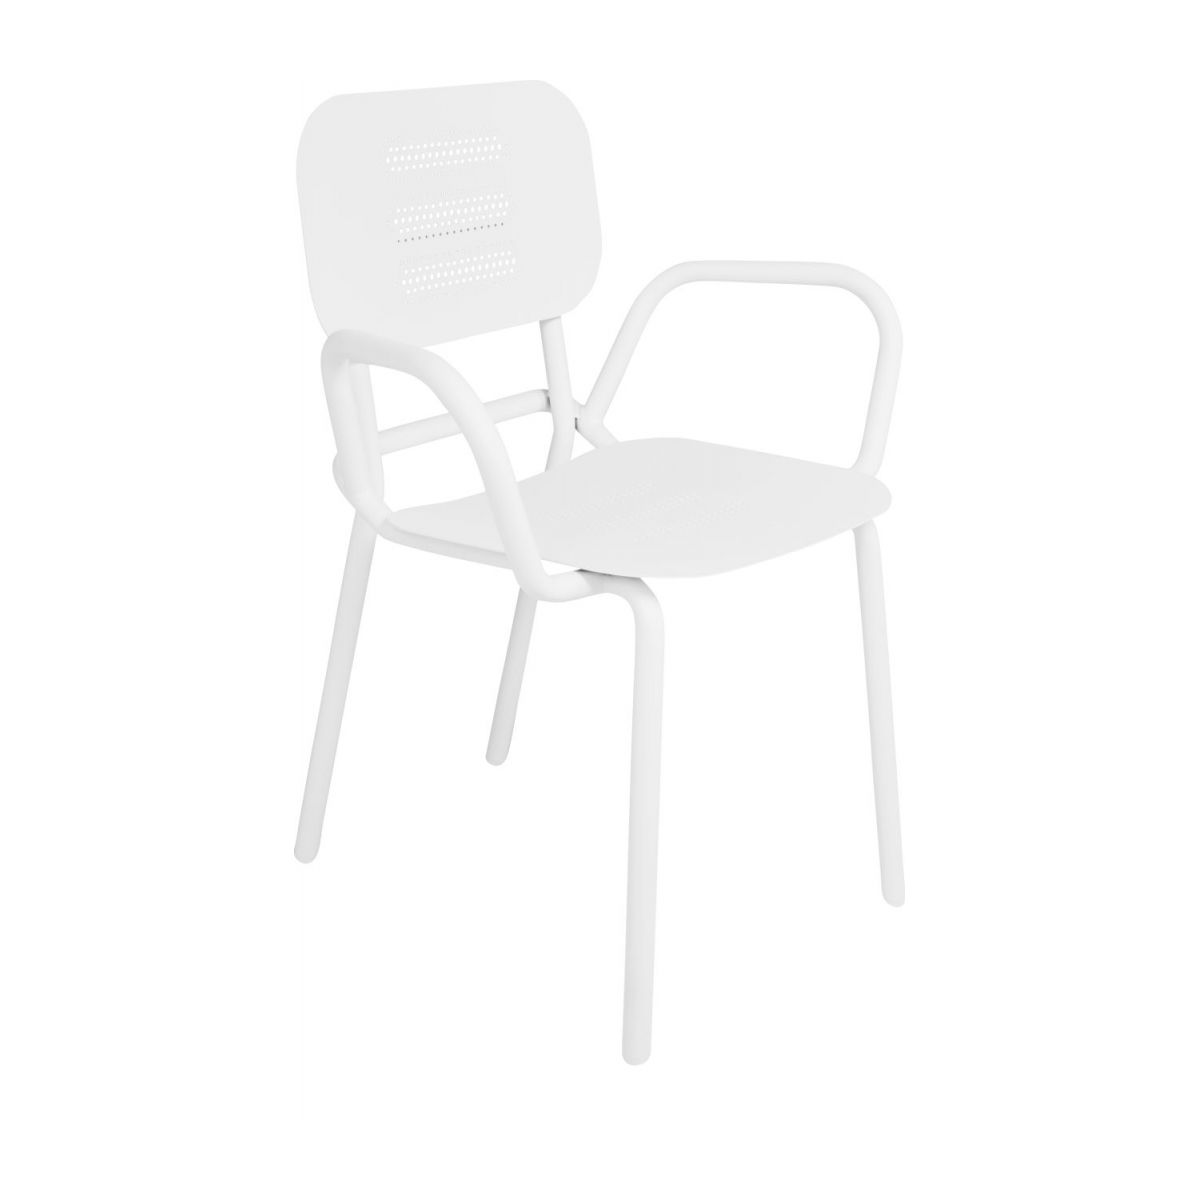 Garden chair with armrests n°1